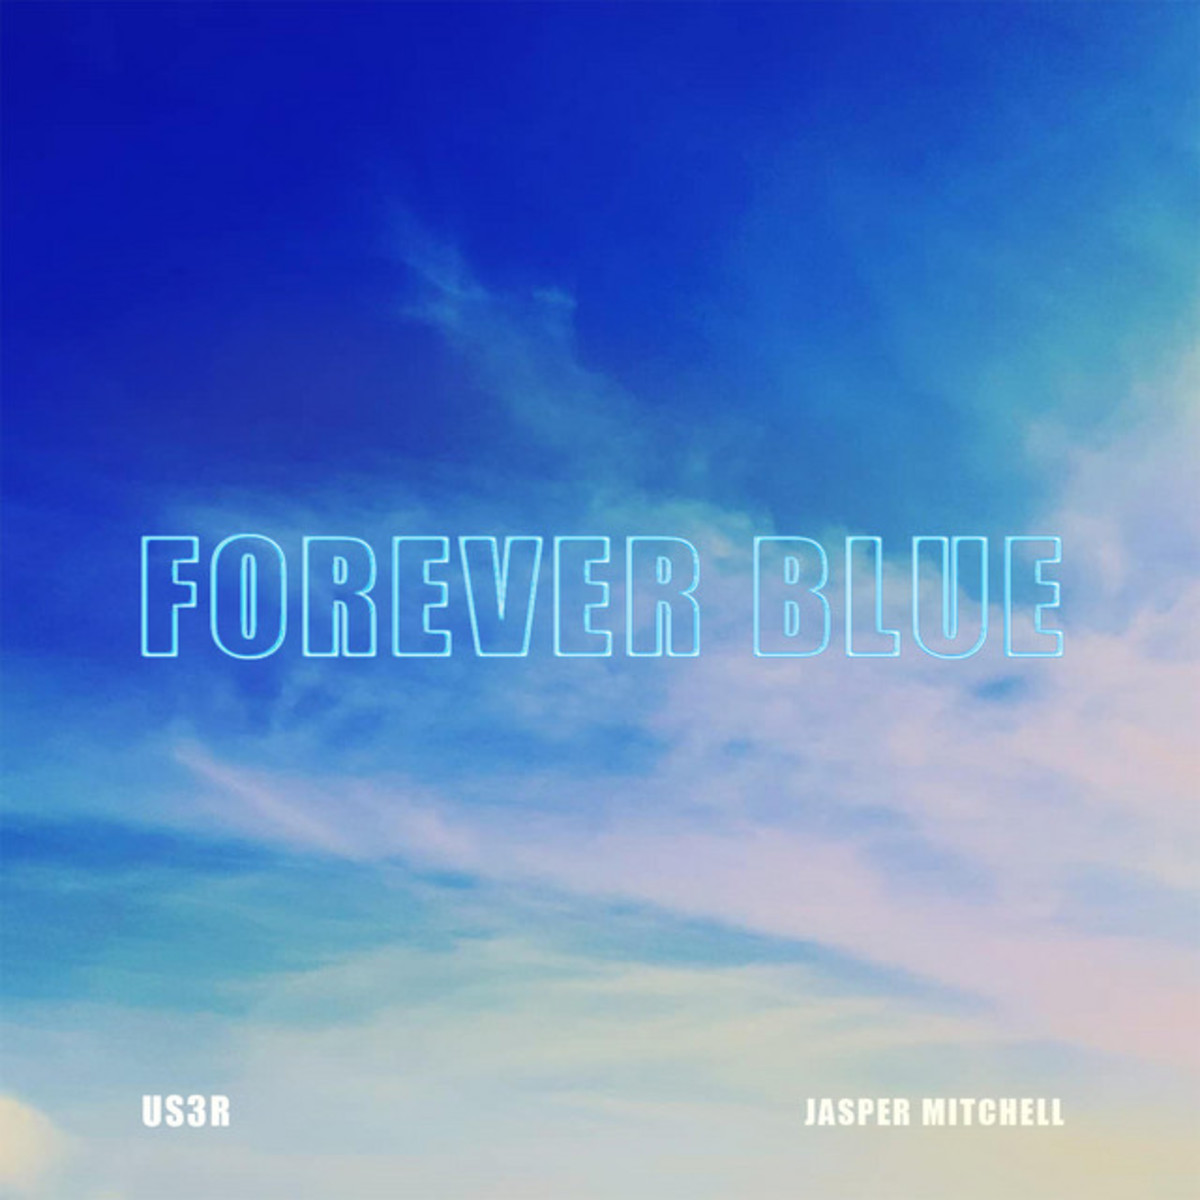 """Synth Single Review: """"Forever Blue"""" by US3r and Jasper Mitchell"""